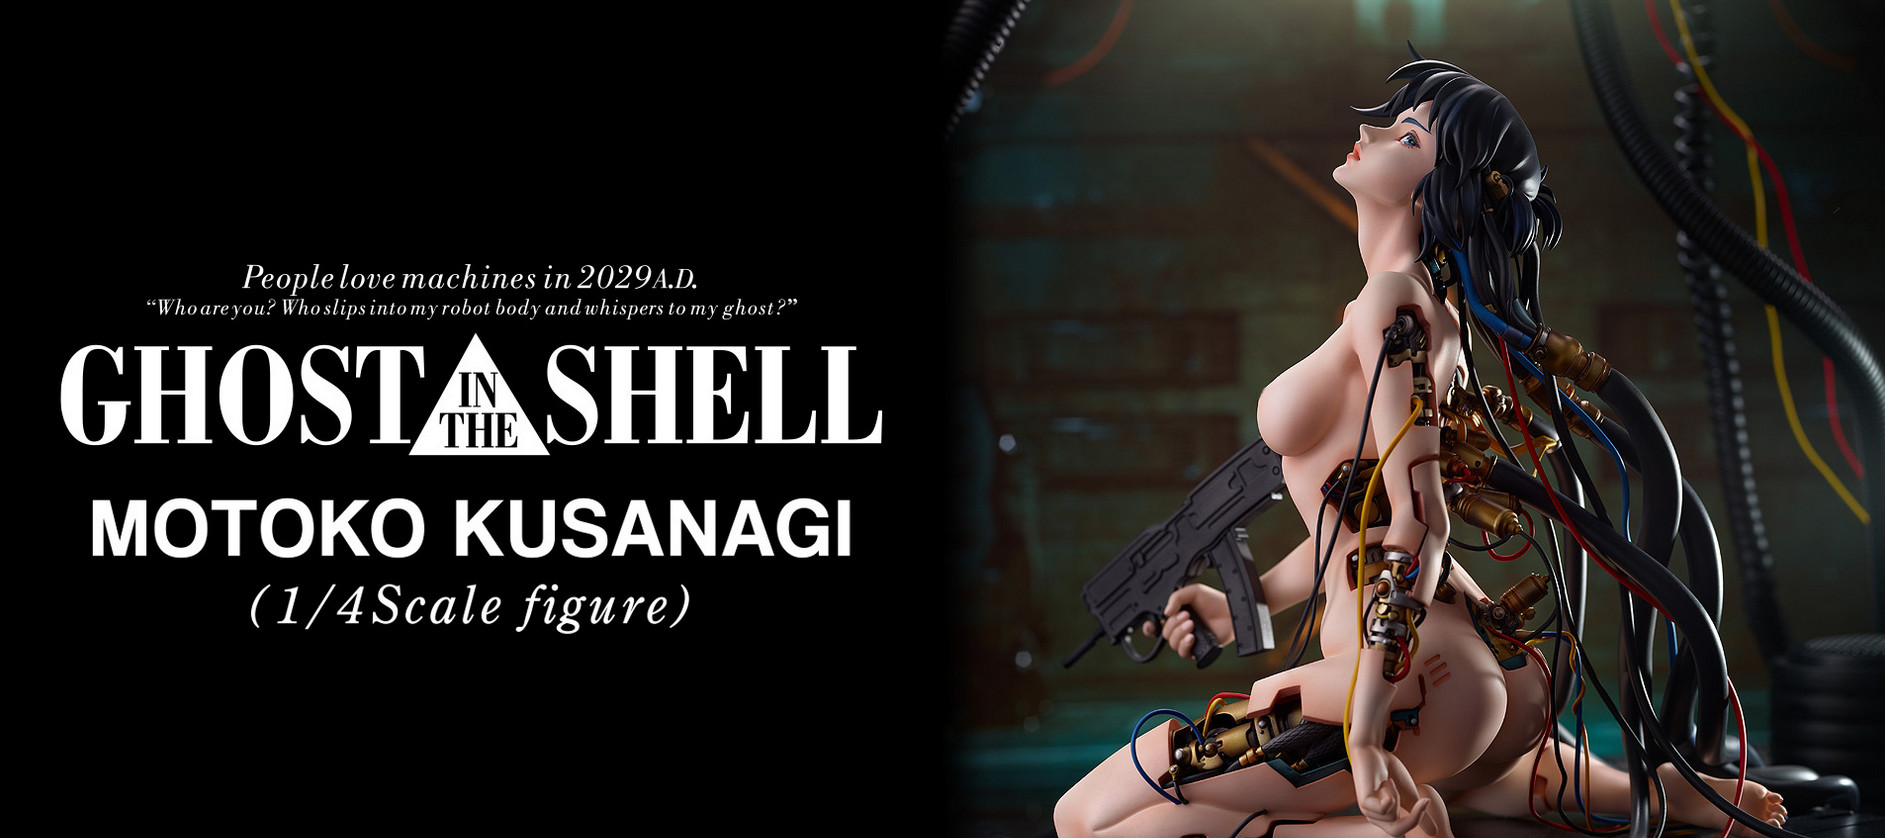 Figur nyheder 16 april 2021: Ghost in the Shell, Sailor Moon katte